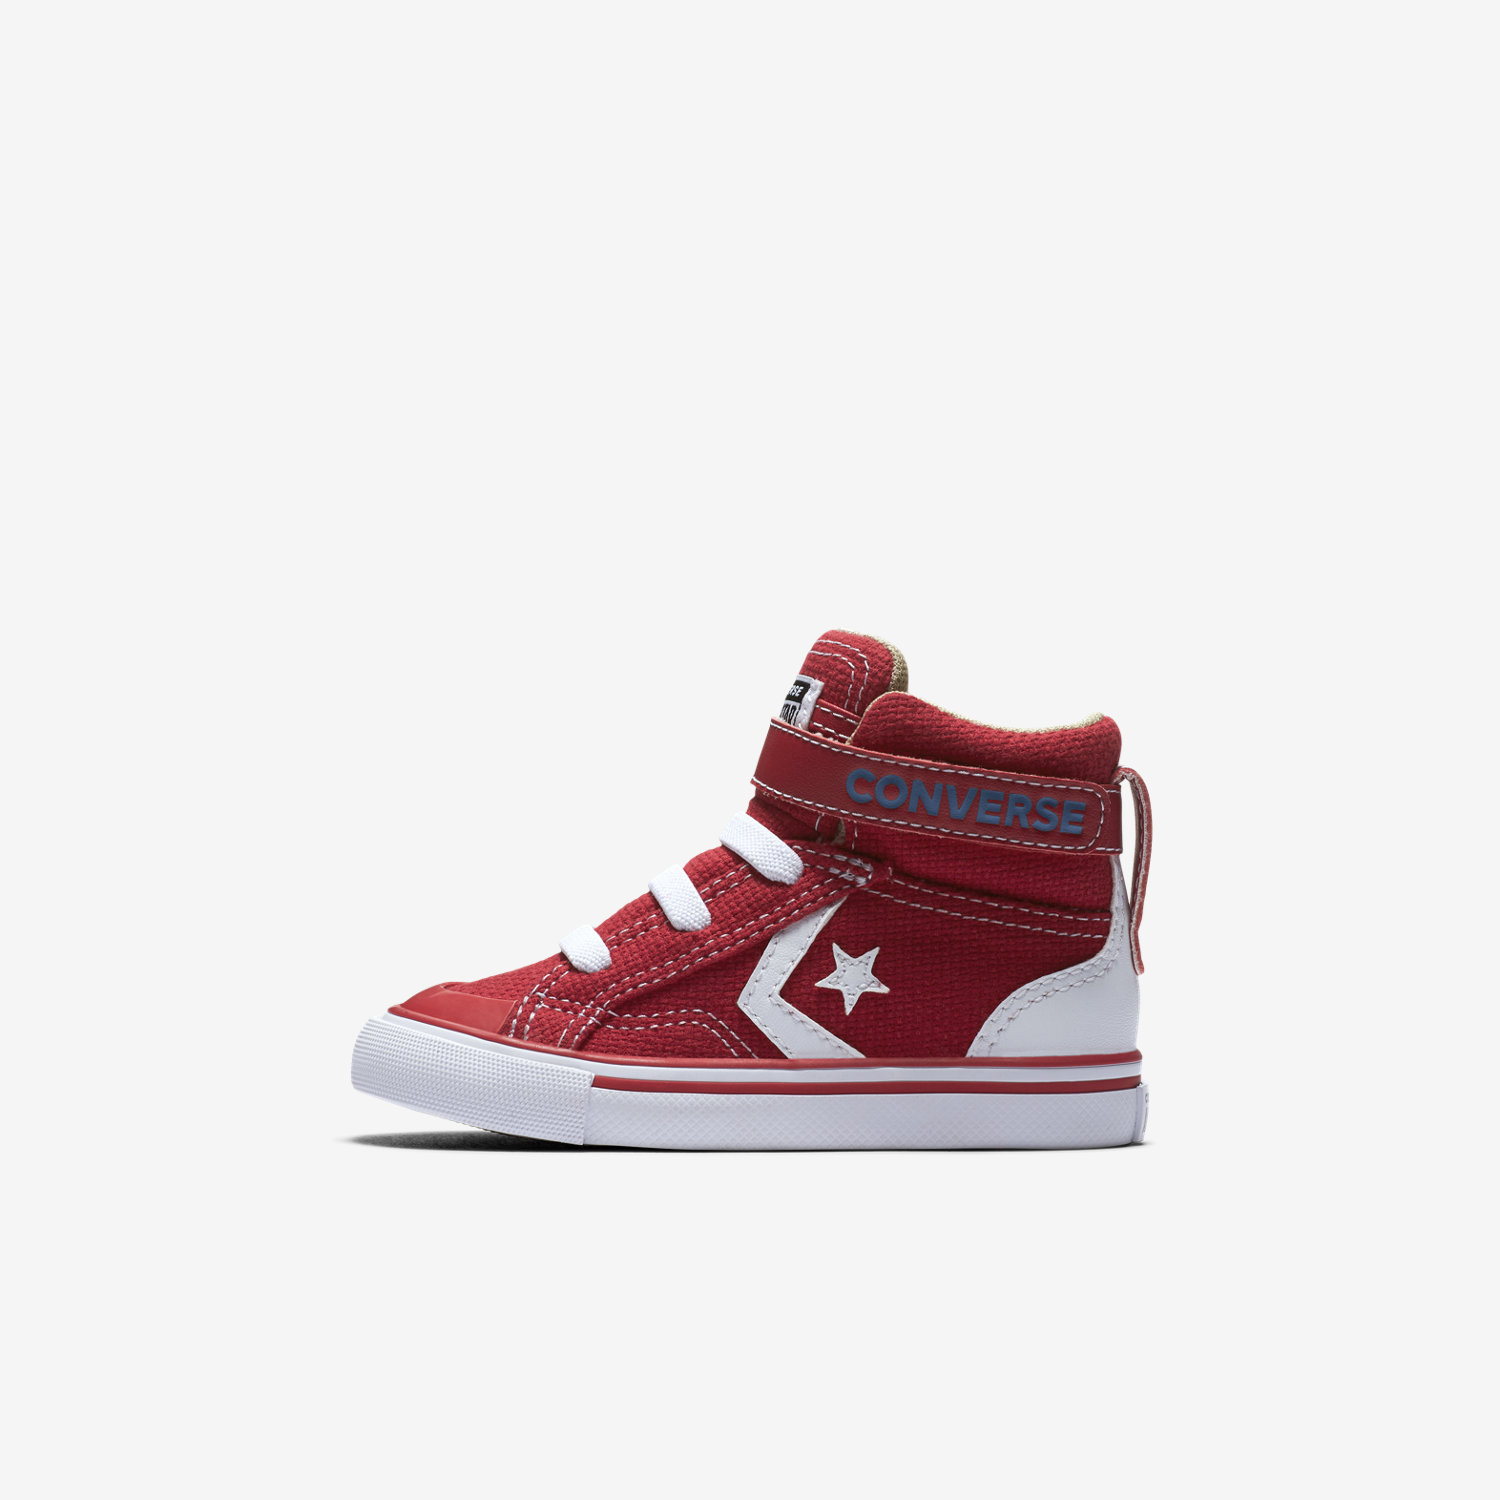 Converse Pro Blaze Strap High Top Infant Toddlers Shoe Nike